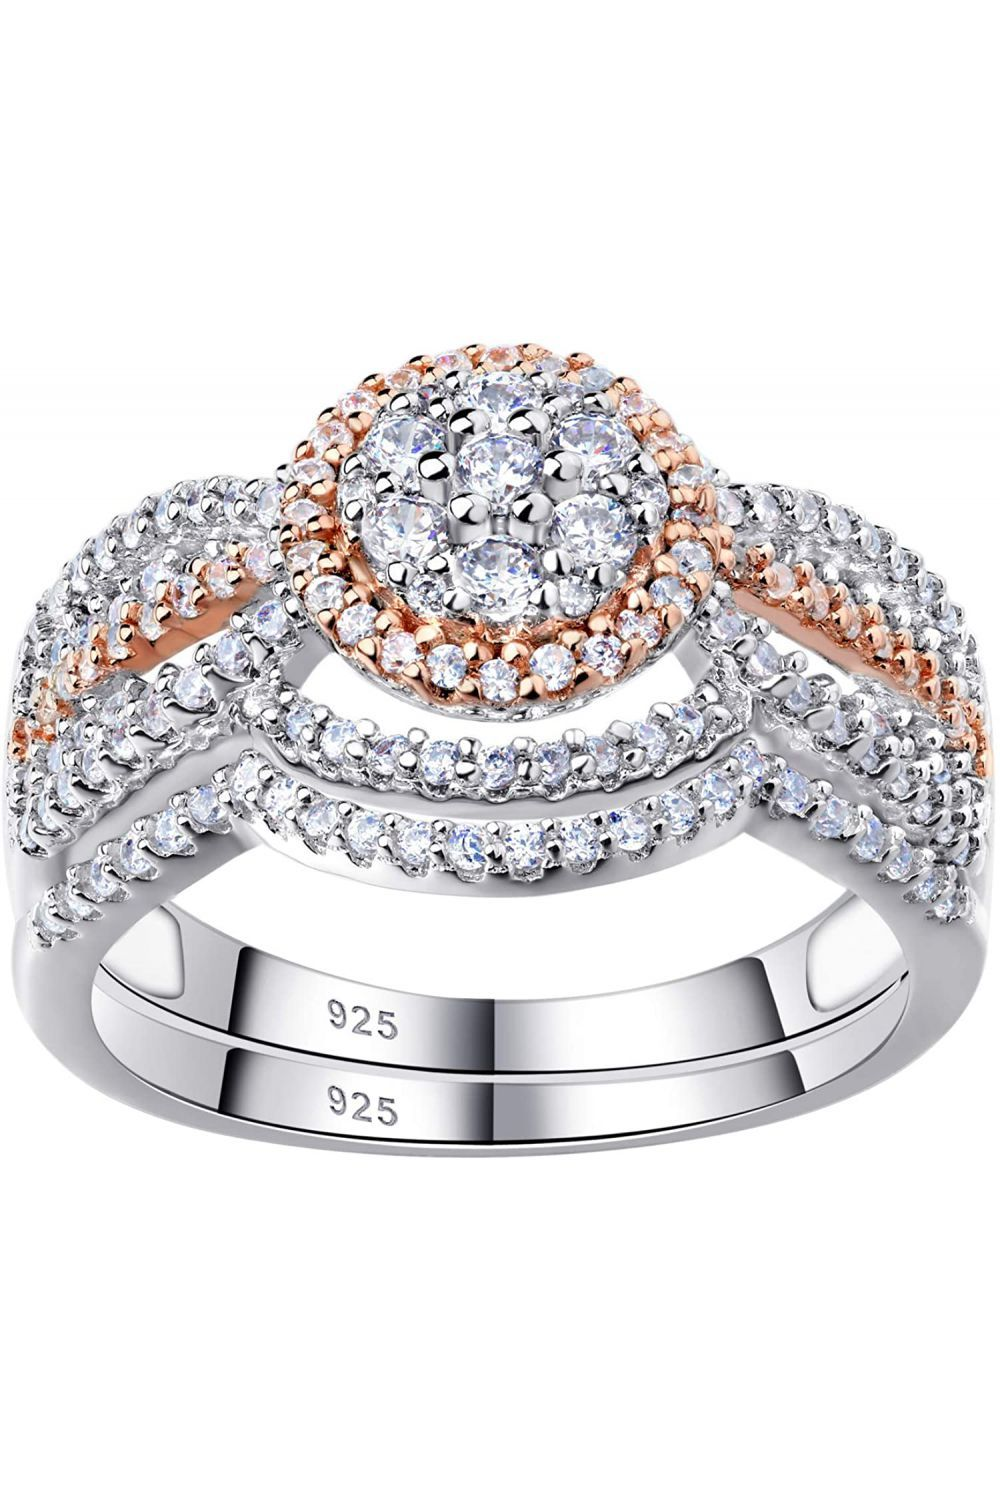 Queen Victoria Vintage Style Sterling Silver Cubic Zirconia Wedding Ring Set Vintage Style Rings Wedding Rings Vintage Cz Wedding Ring Sets